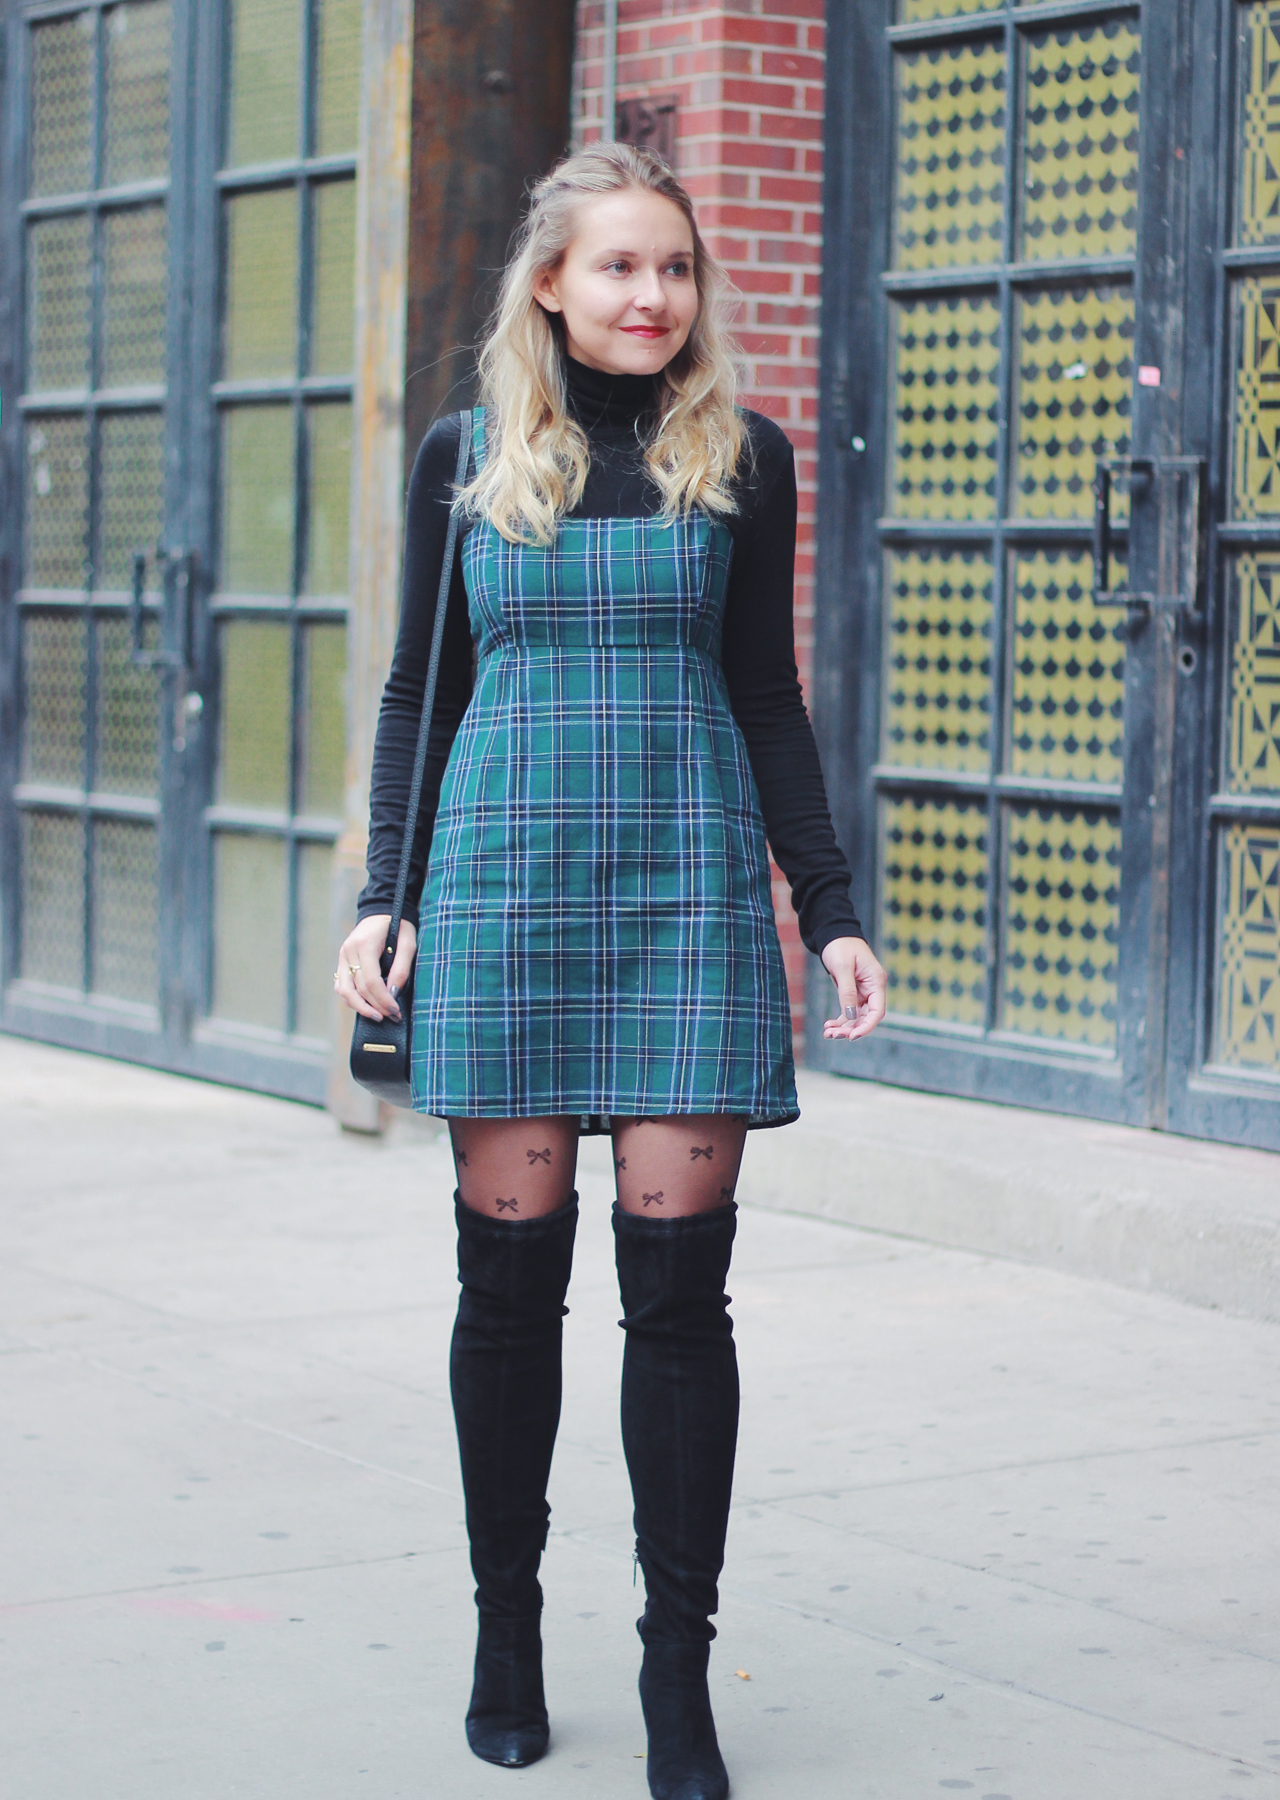 The Steele Maiden: Cute Holiday Style - Plaid Mini Dress, Bow Tights and OTK Boots